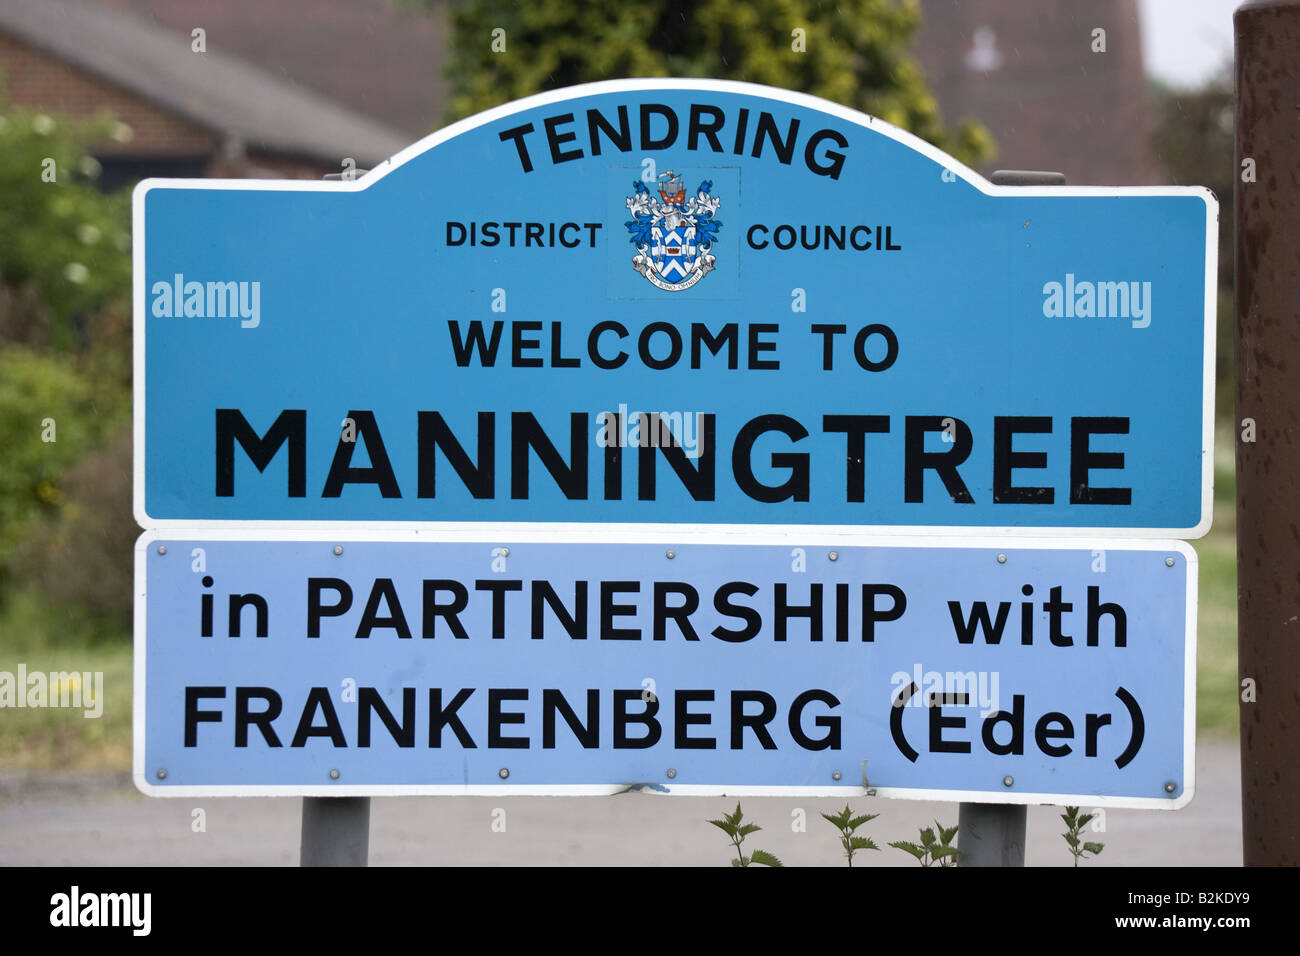 Manningtree the smallest market town in England - Stock Image